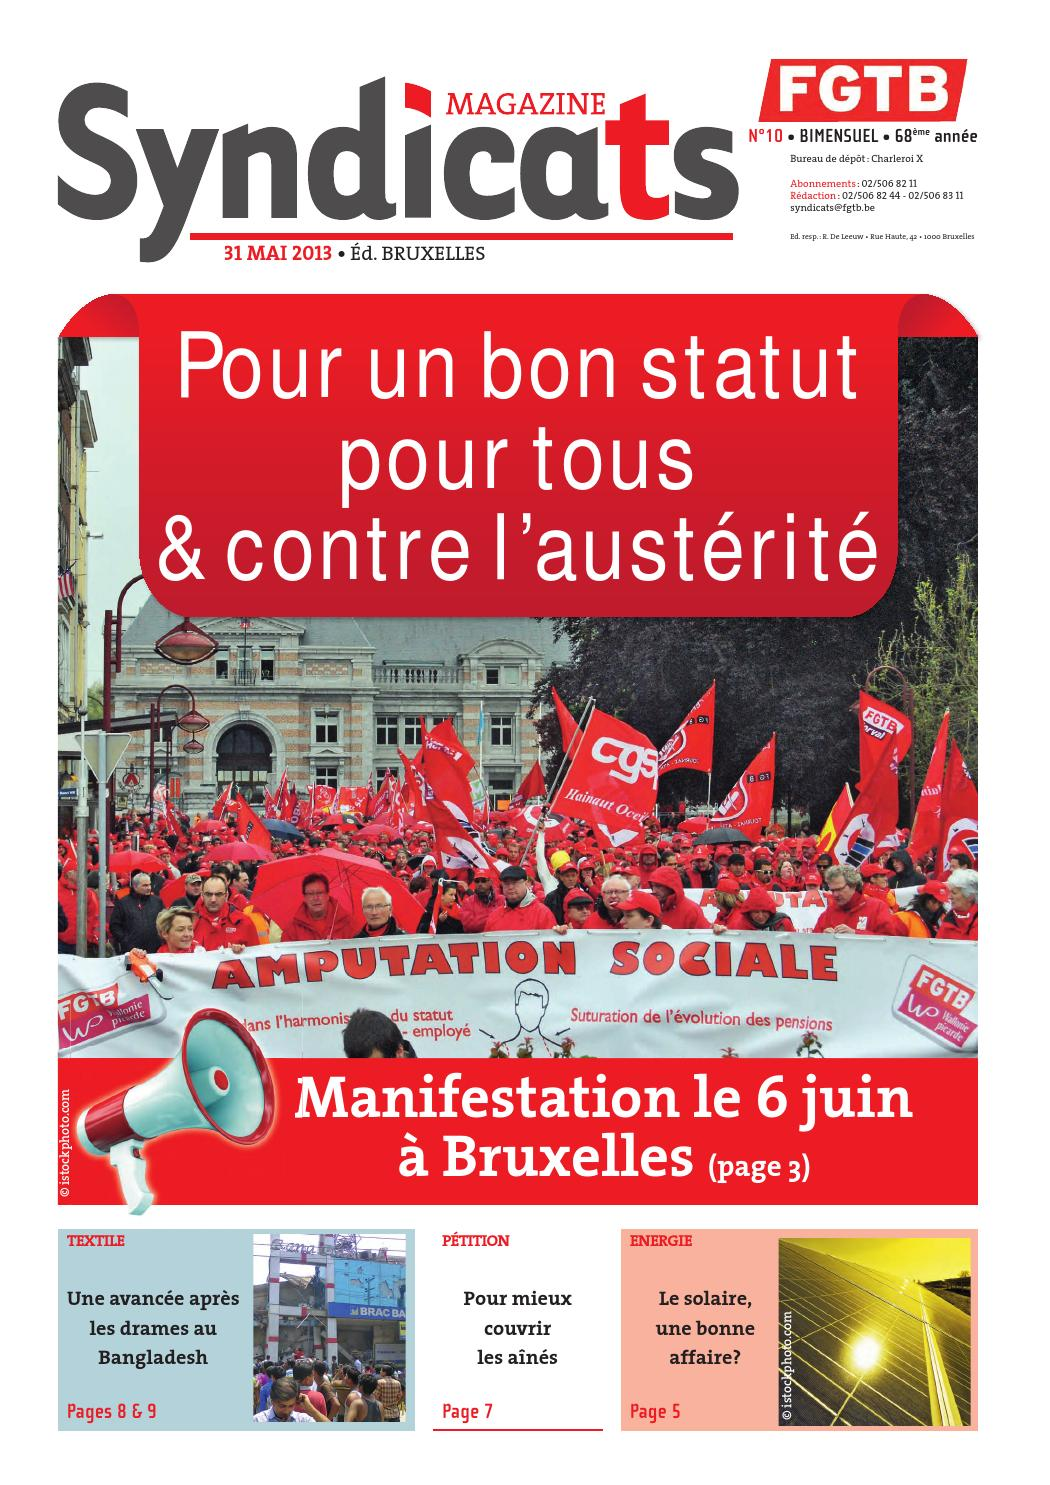 Syndicats FGTB n°10 - 31 mai 2013 by FGTB - issuu